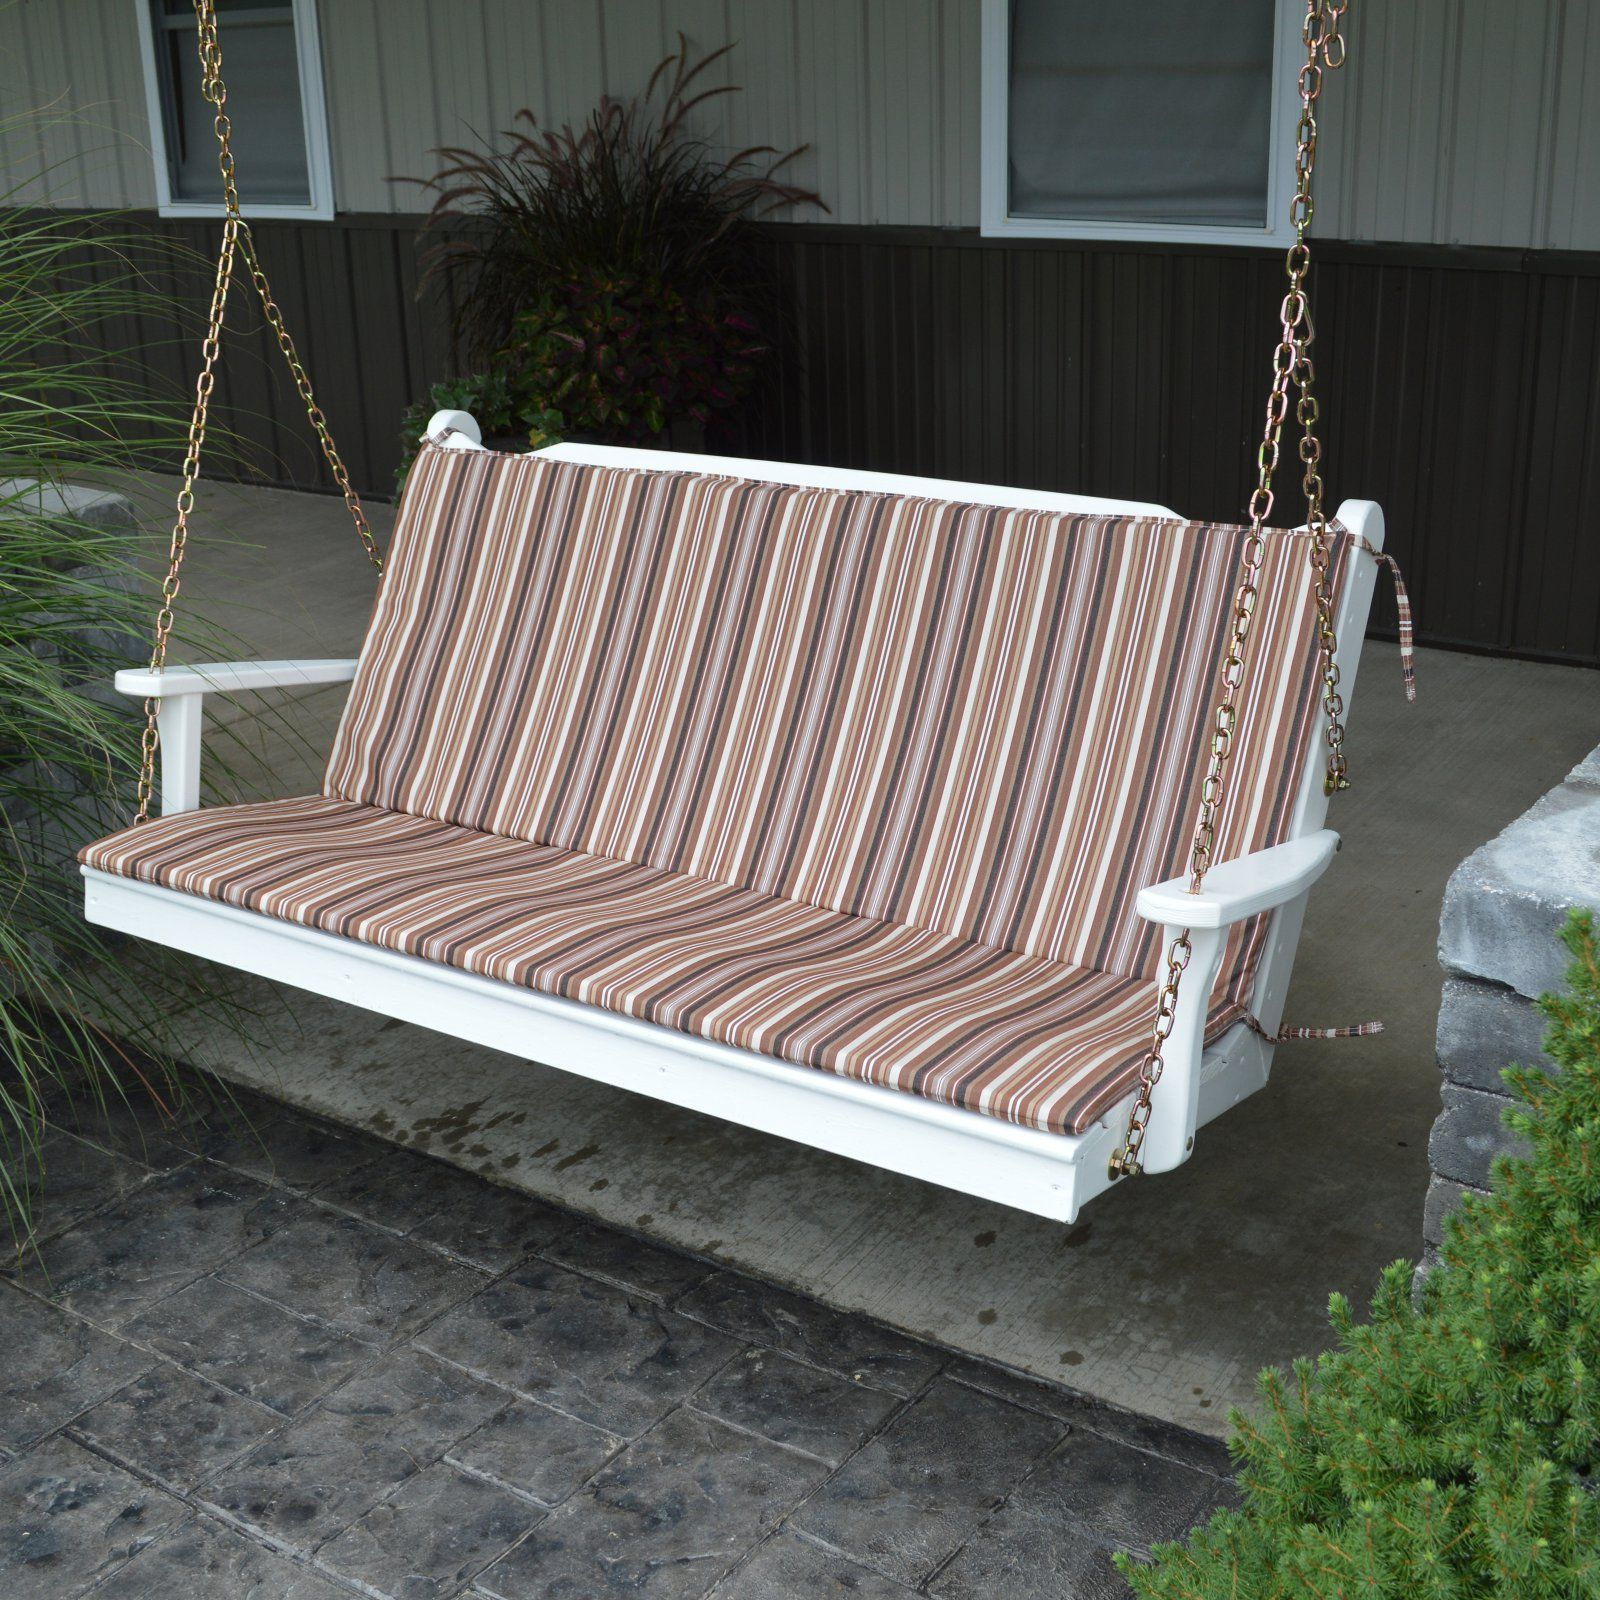 A L Furniture Sundown Agora Hinged Seat And Back Full Bench Cushion In 2021 Porch Swing Cushions Outdoor Cushions Porch Swing Porch swing cushions with back